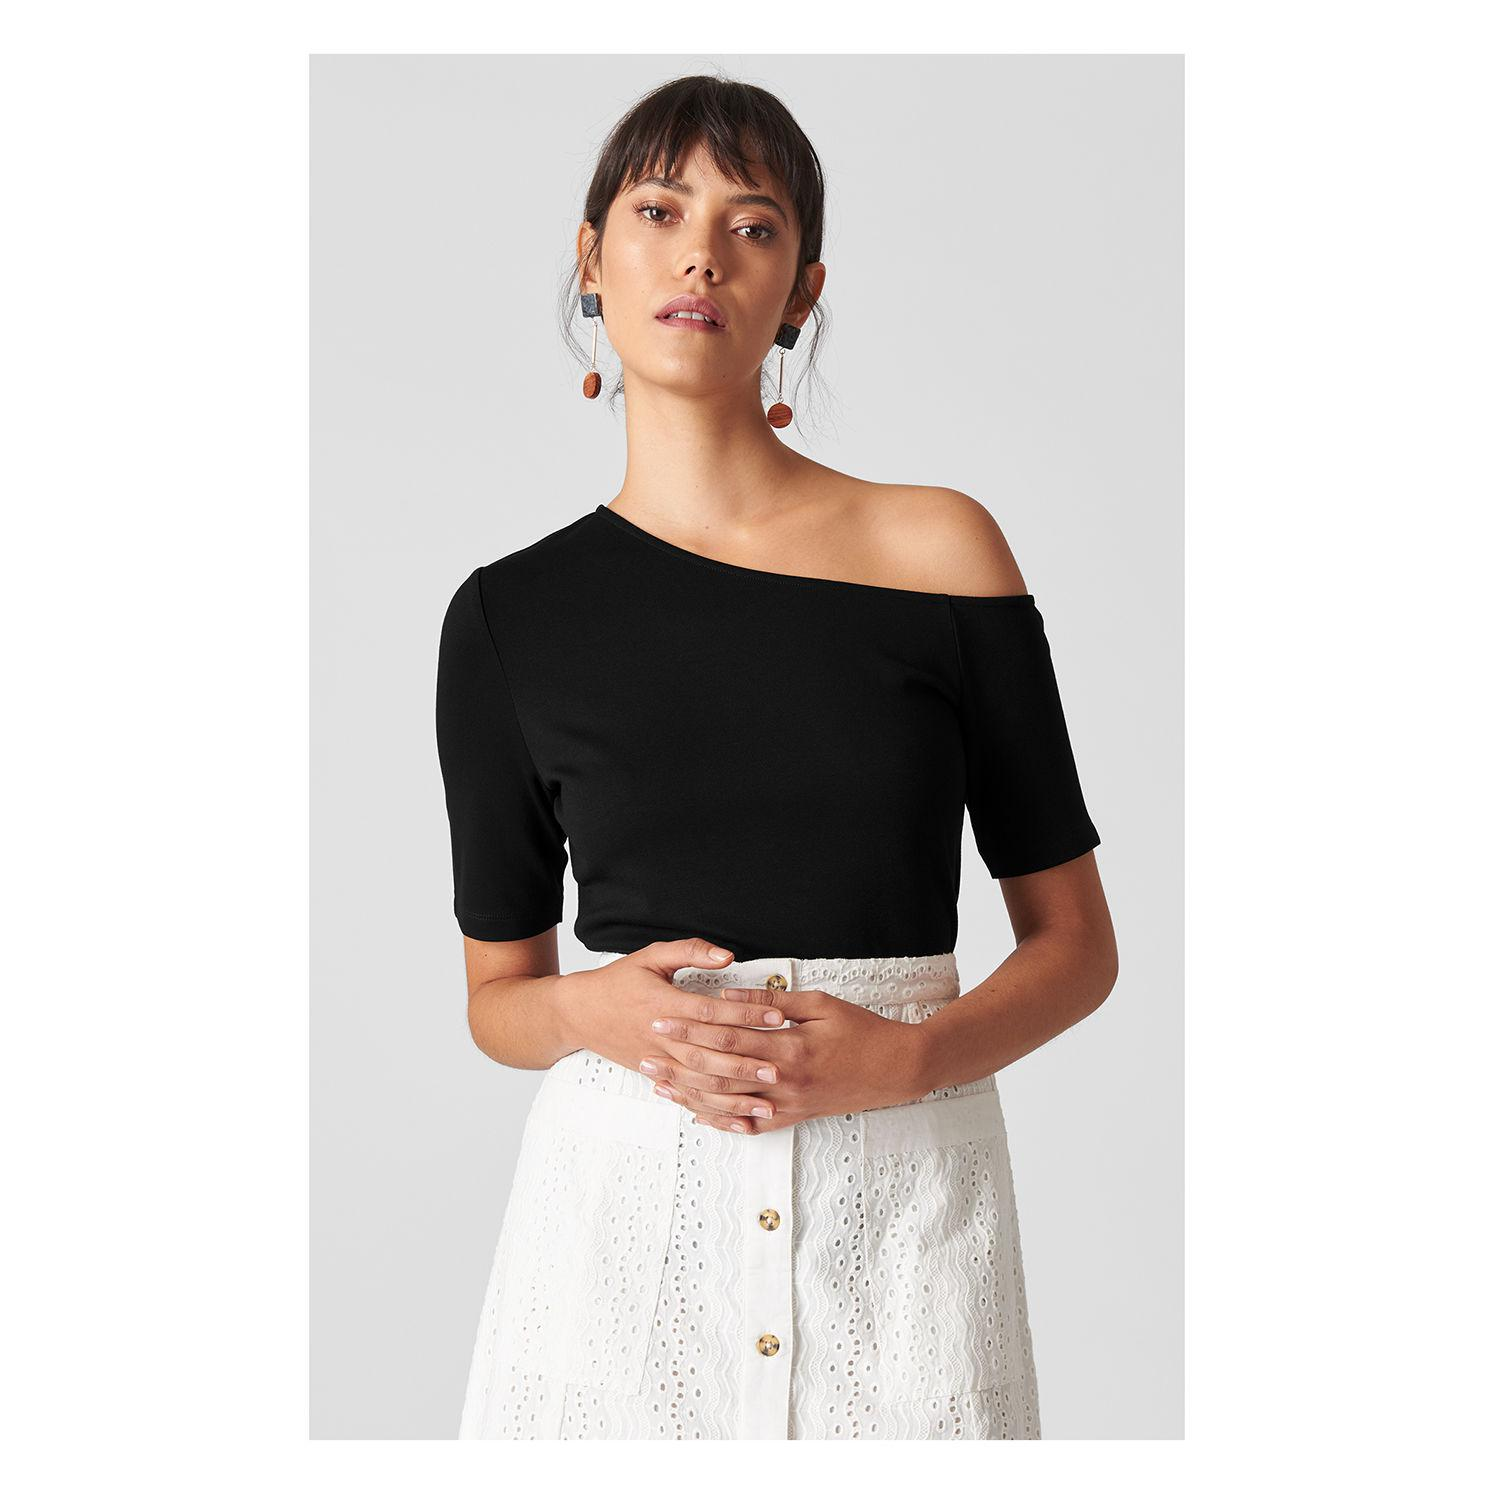 b91be652d6537 Whistles Asymmetric One Shoulder Top in Black - Lyst